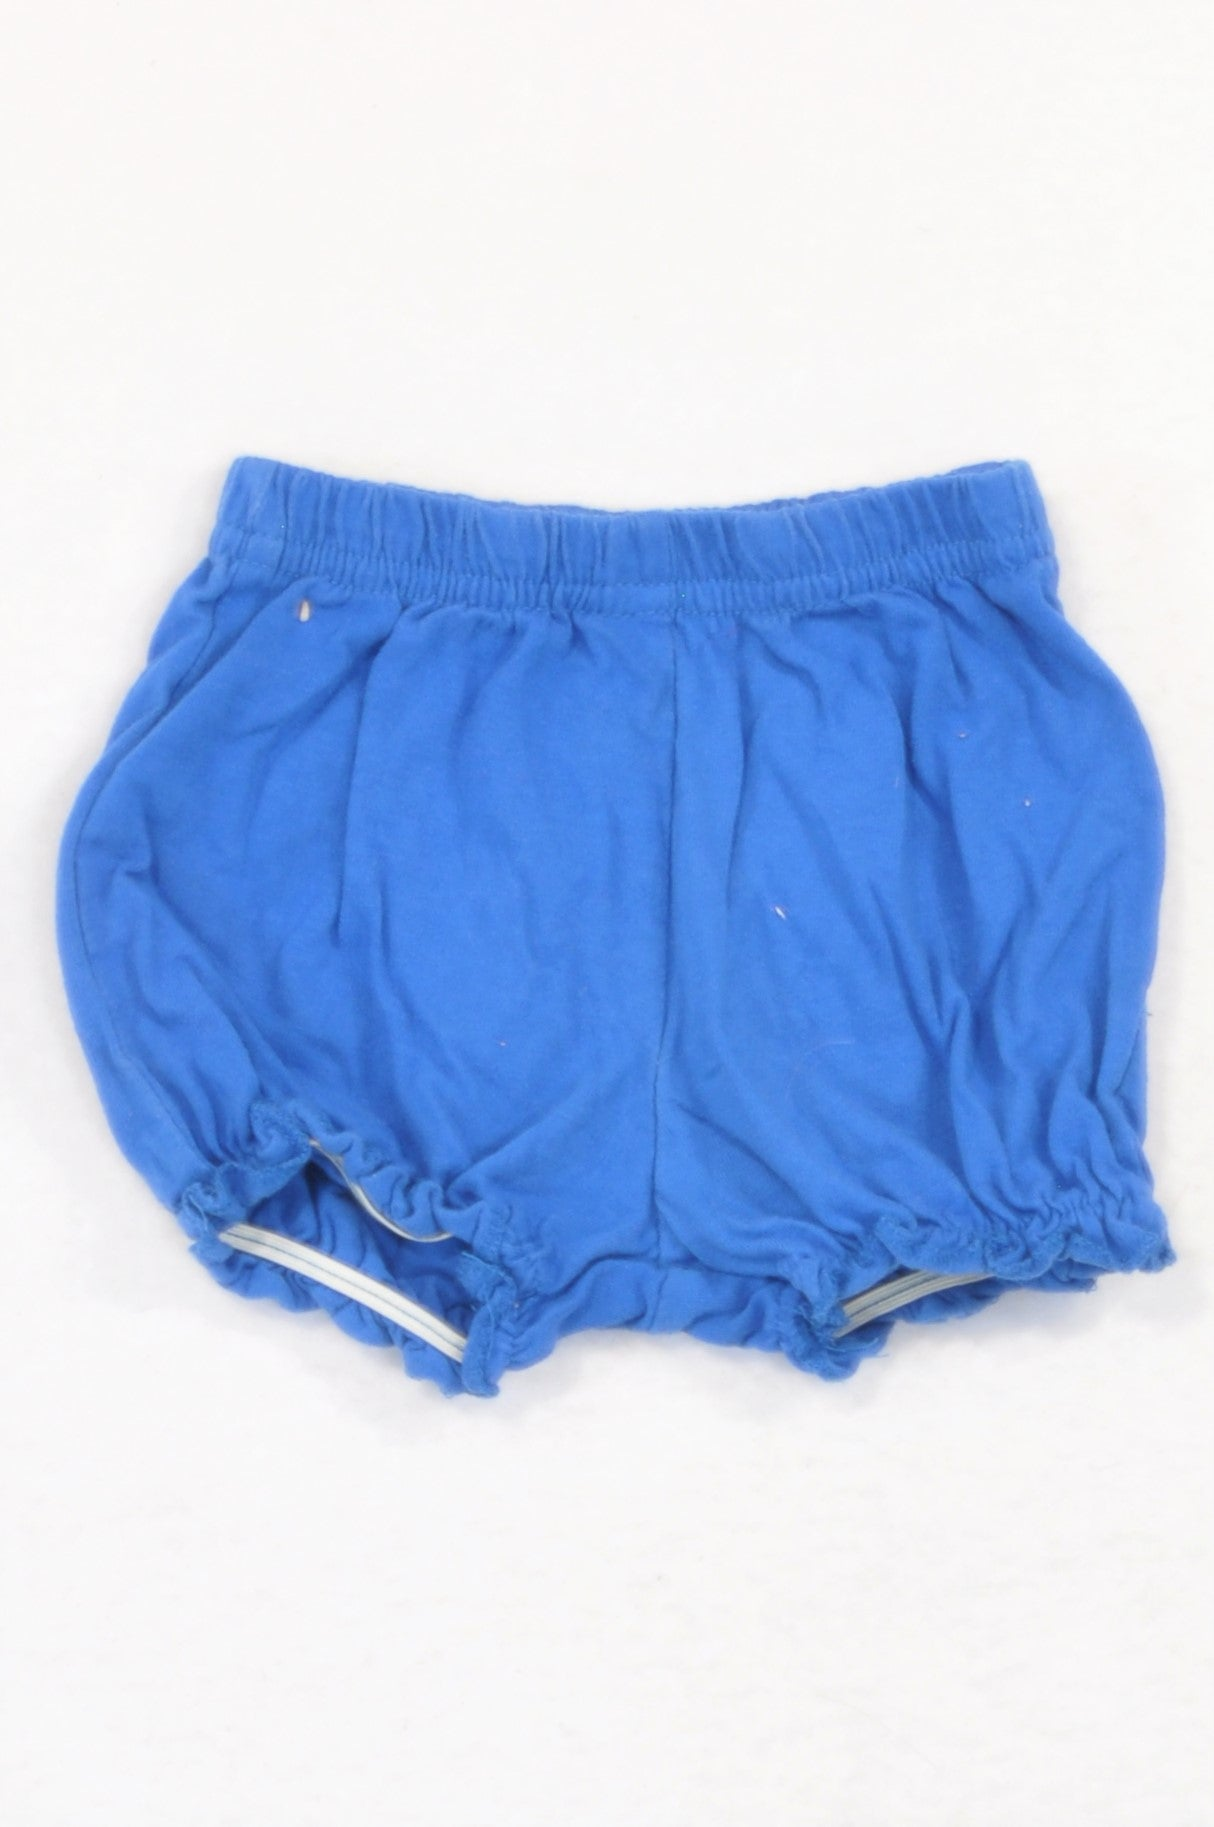 Jolly Tots Blue Ruffle Bloomers Girls 3-6 months